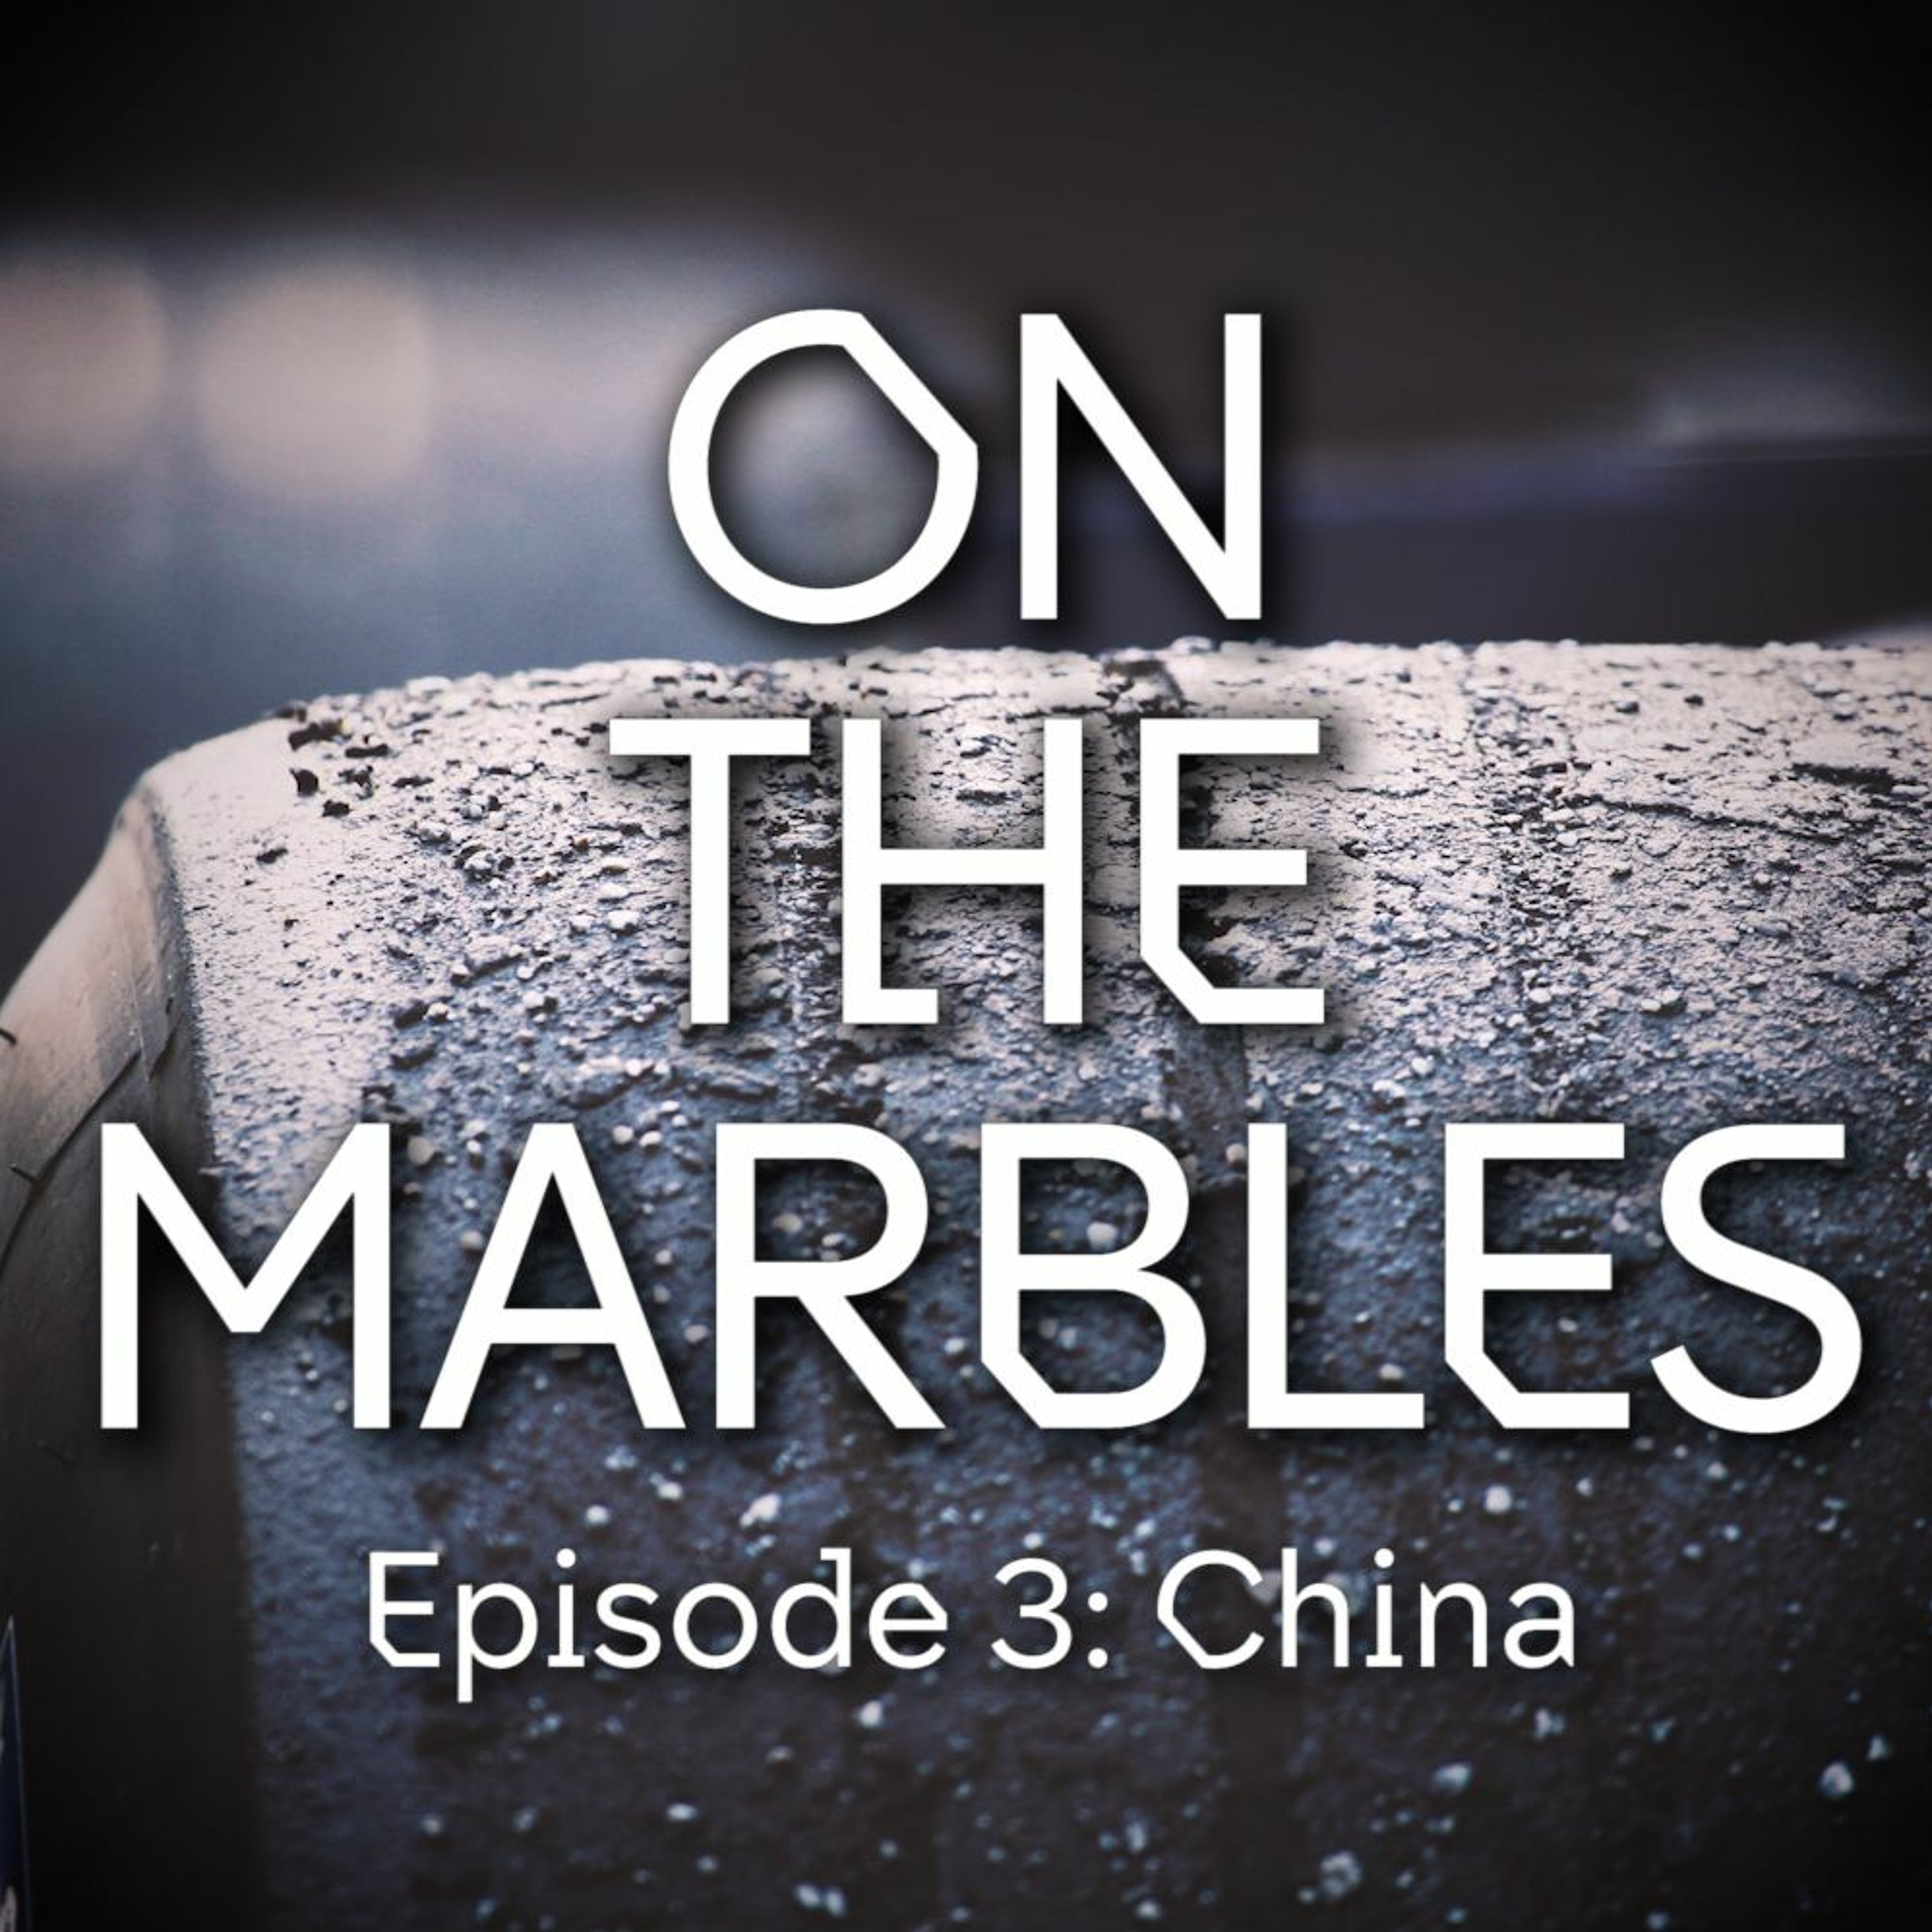 Episode 3: Chinese GP '19